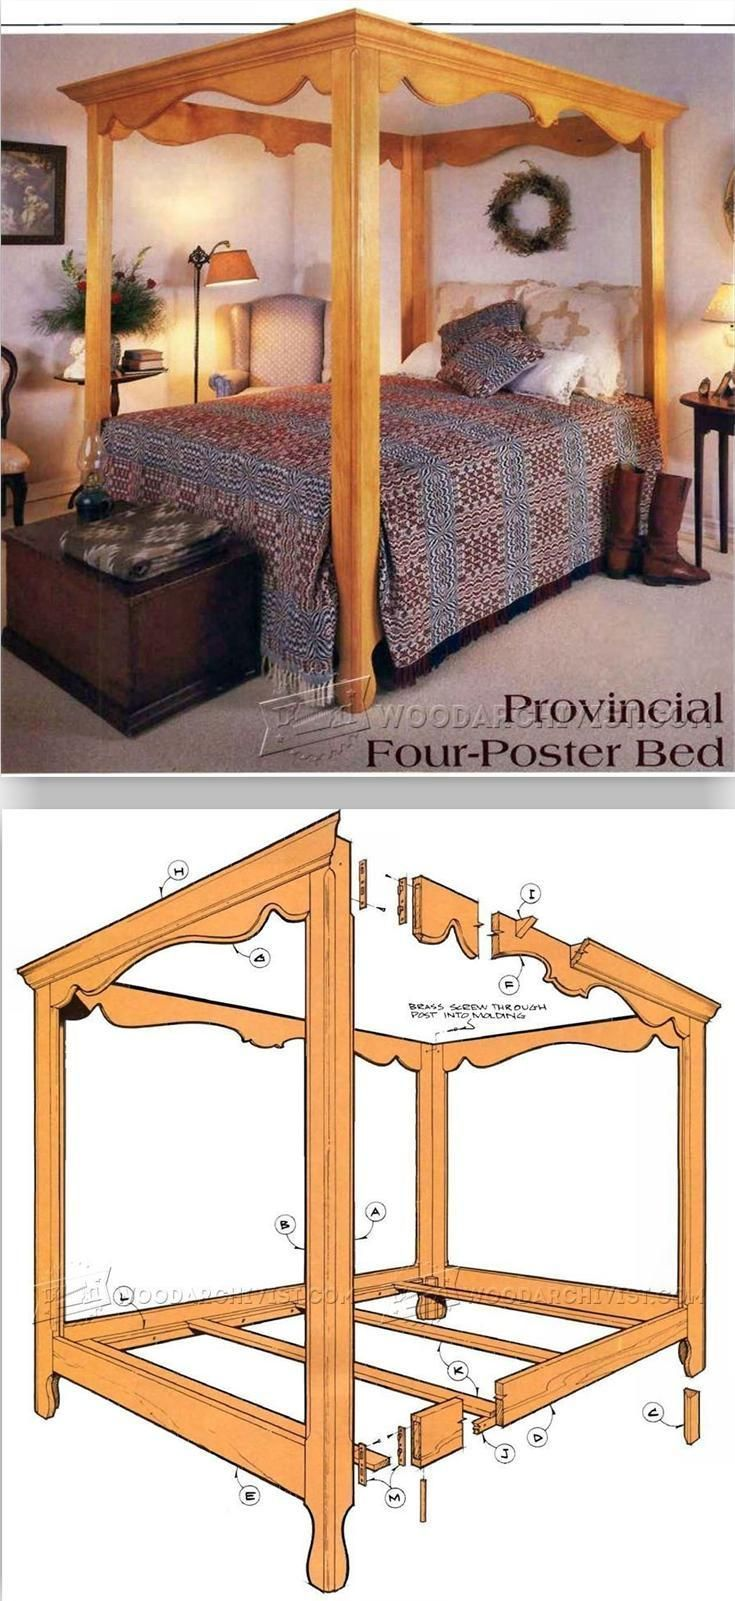 Four Poster Bed Plans Furniture Plans And Projects Furniture Plans Bed Plans Woodworking Plans Toys